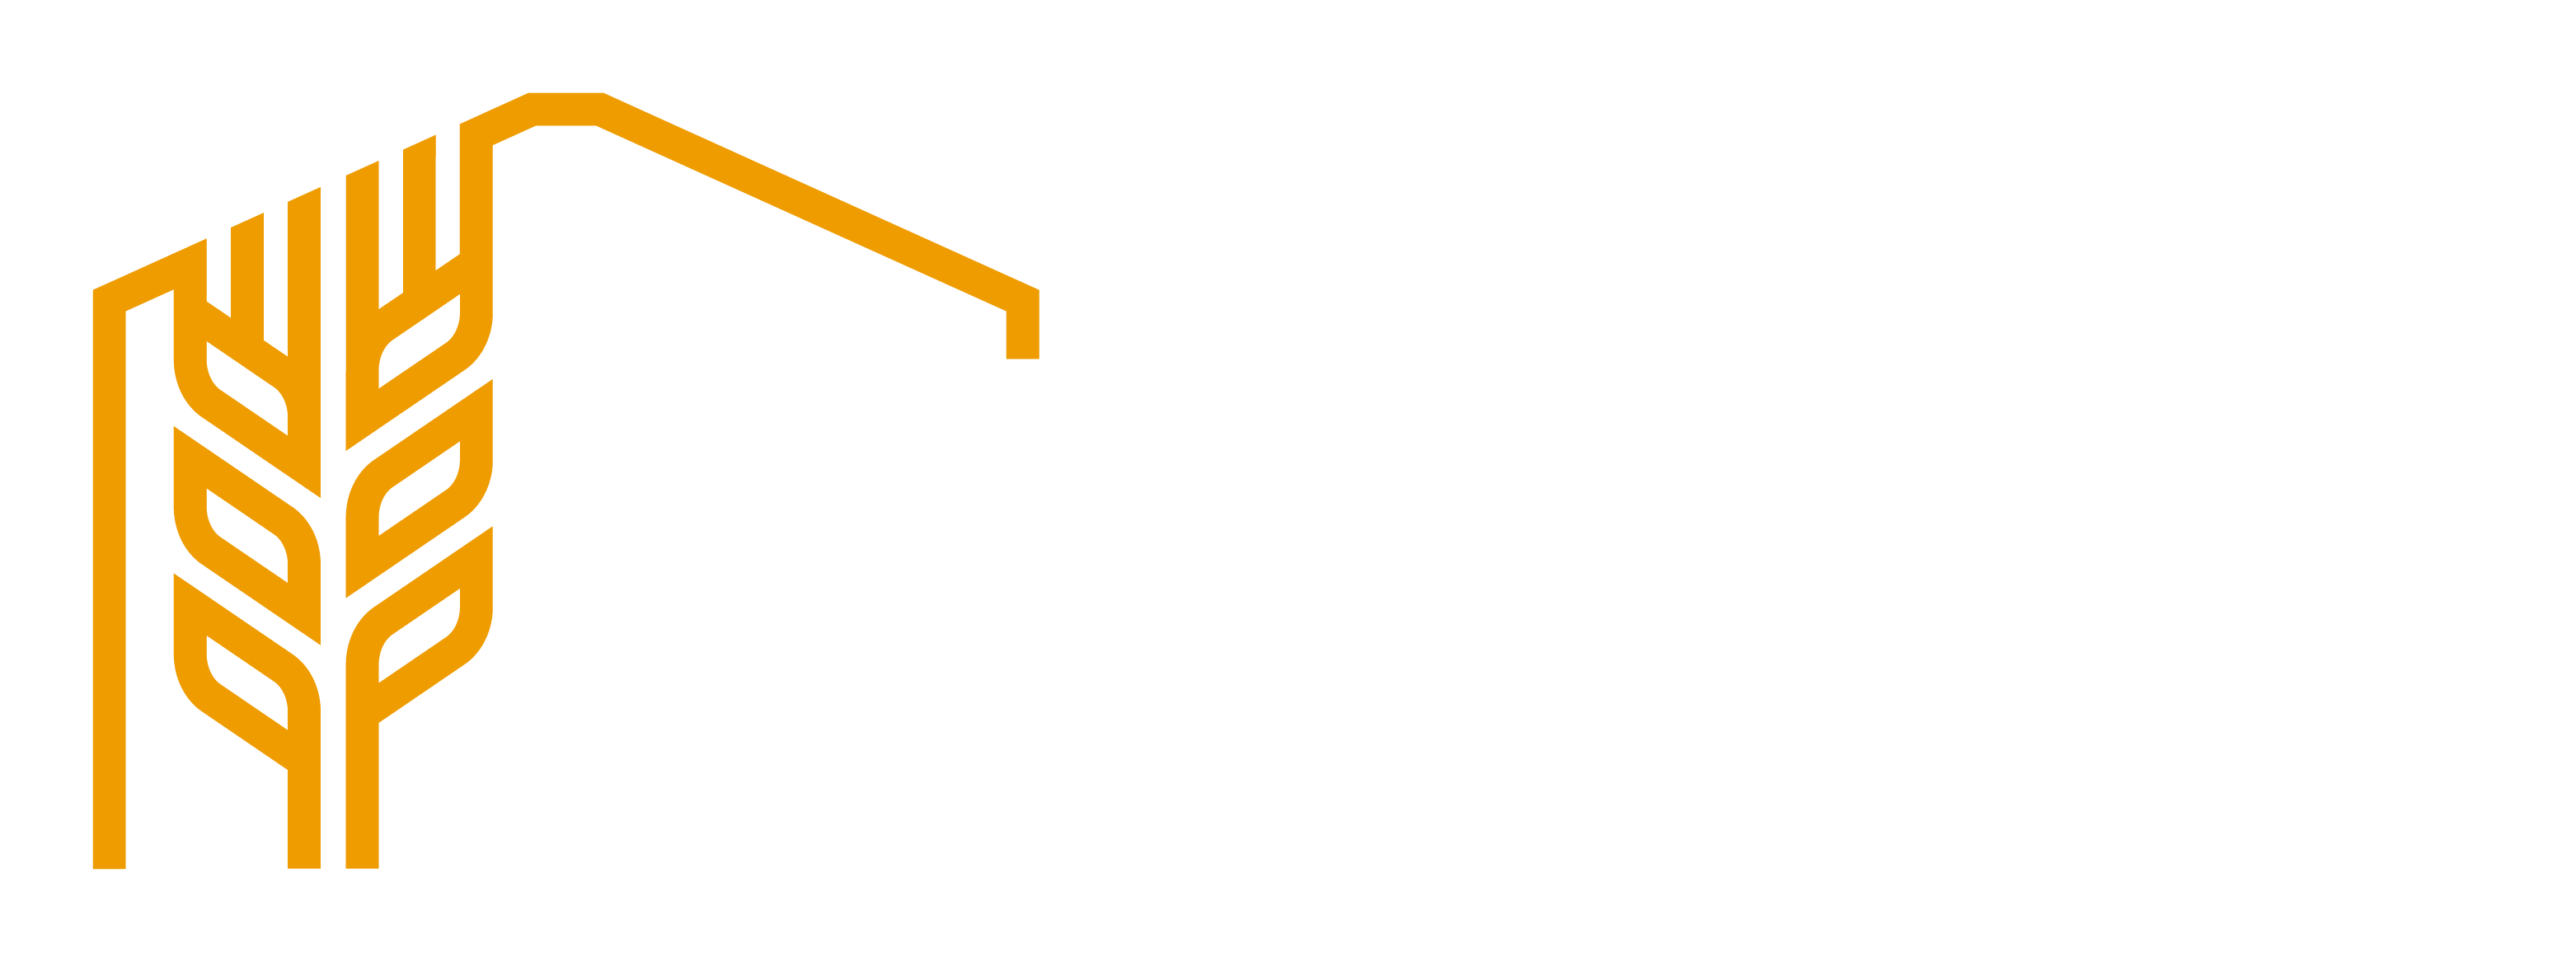 Grain Storage Solutions